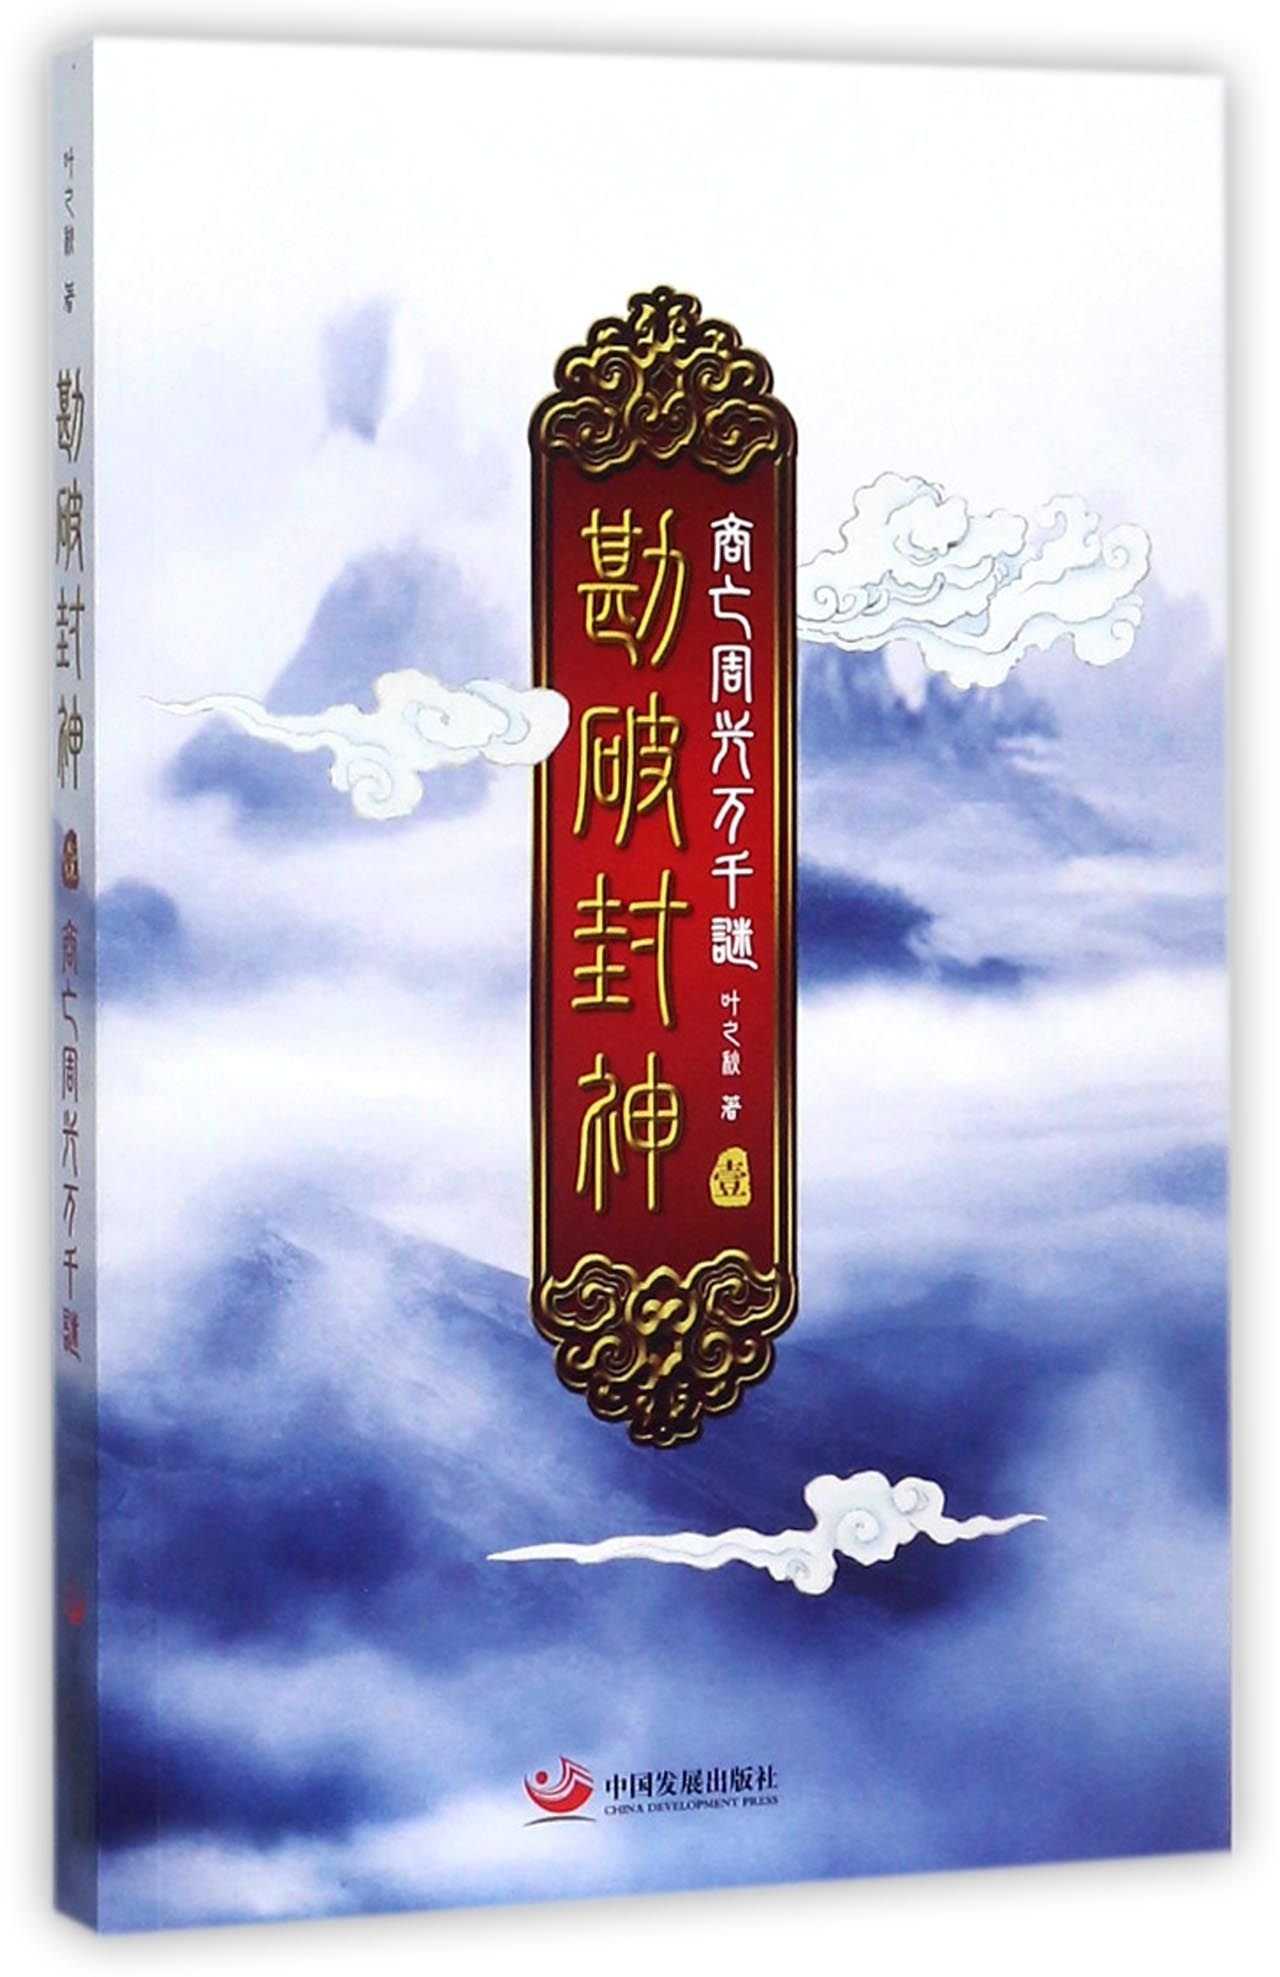 Download 勘破封神(1商亡周兴万千谜) ebook